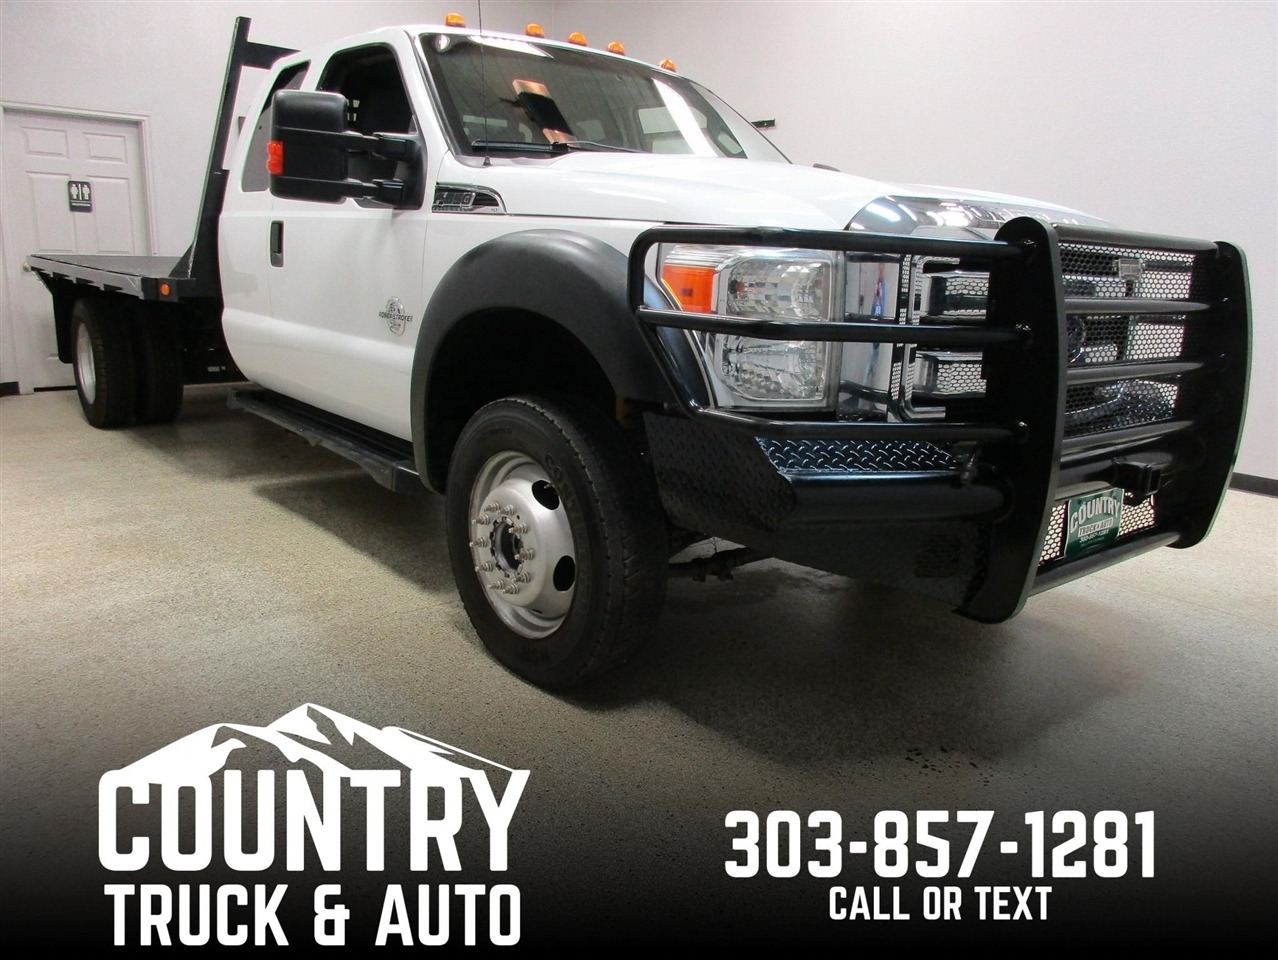 2012 Ford Super Duty F-550 DRW XLT Extended Cab 4WD DRW